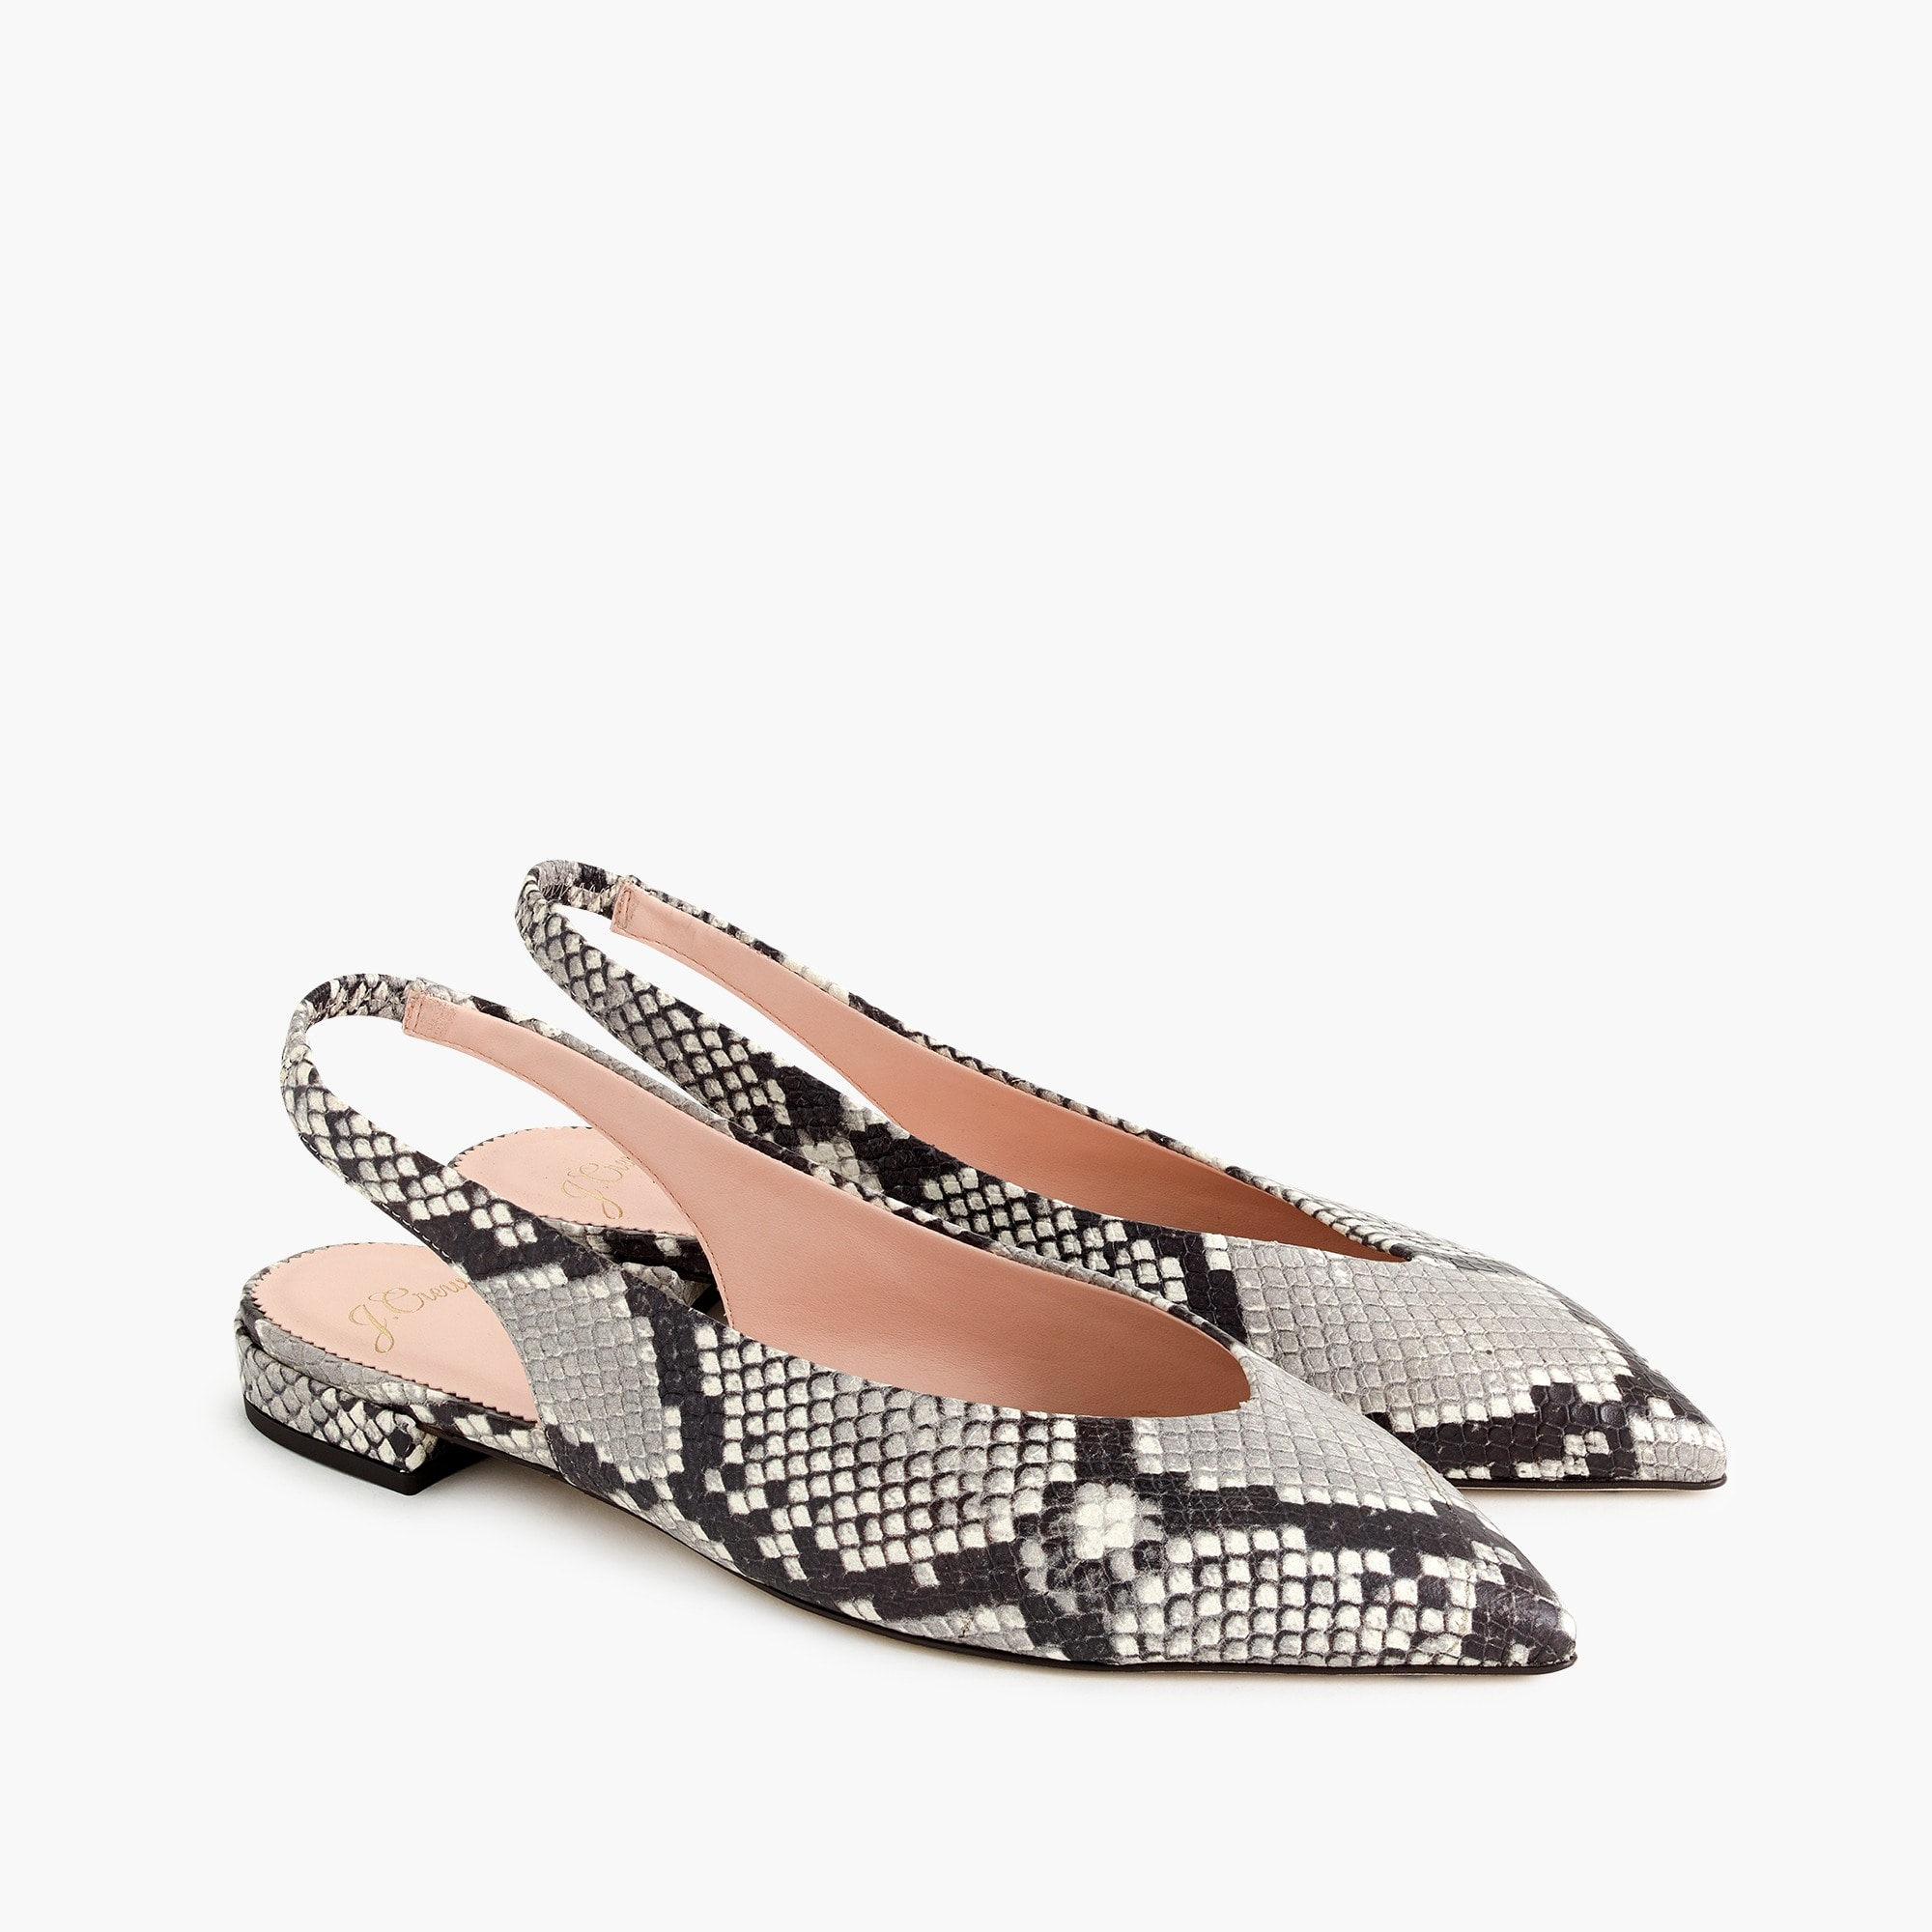 Pointed-toe slingback flats in faux snakeskin